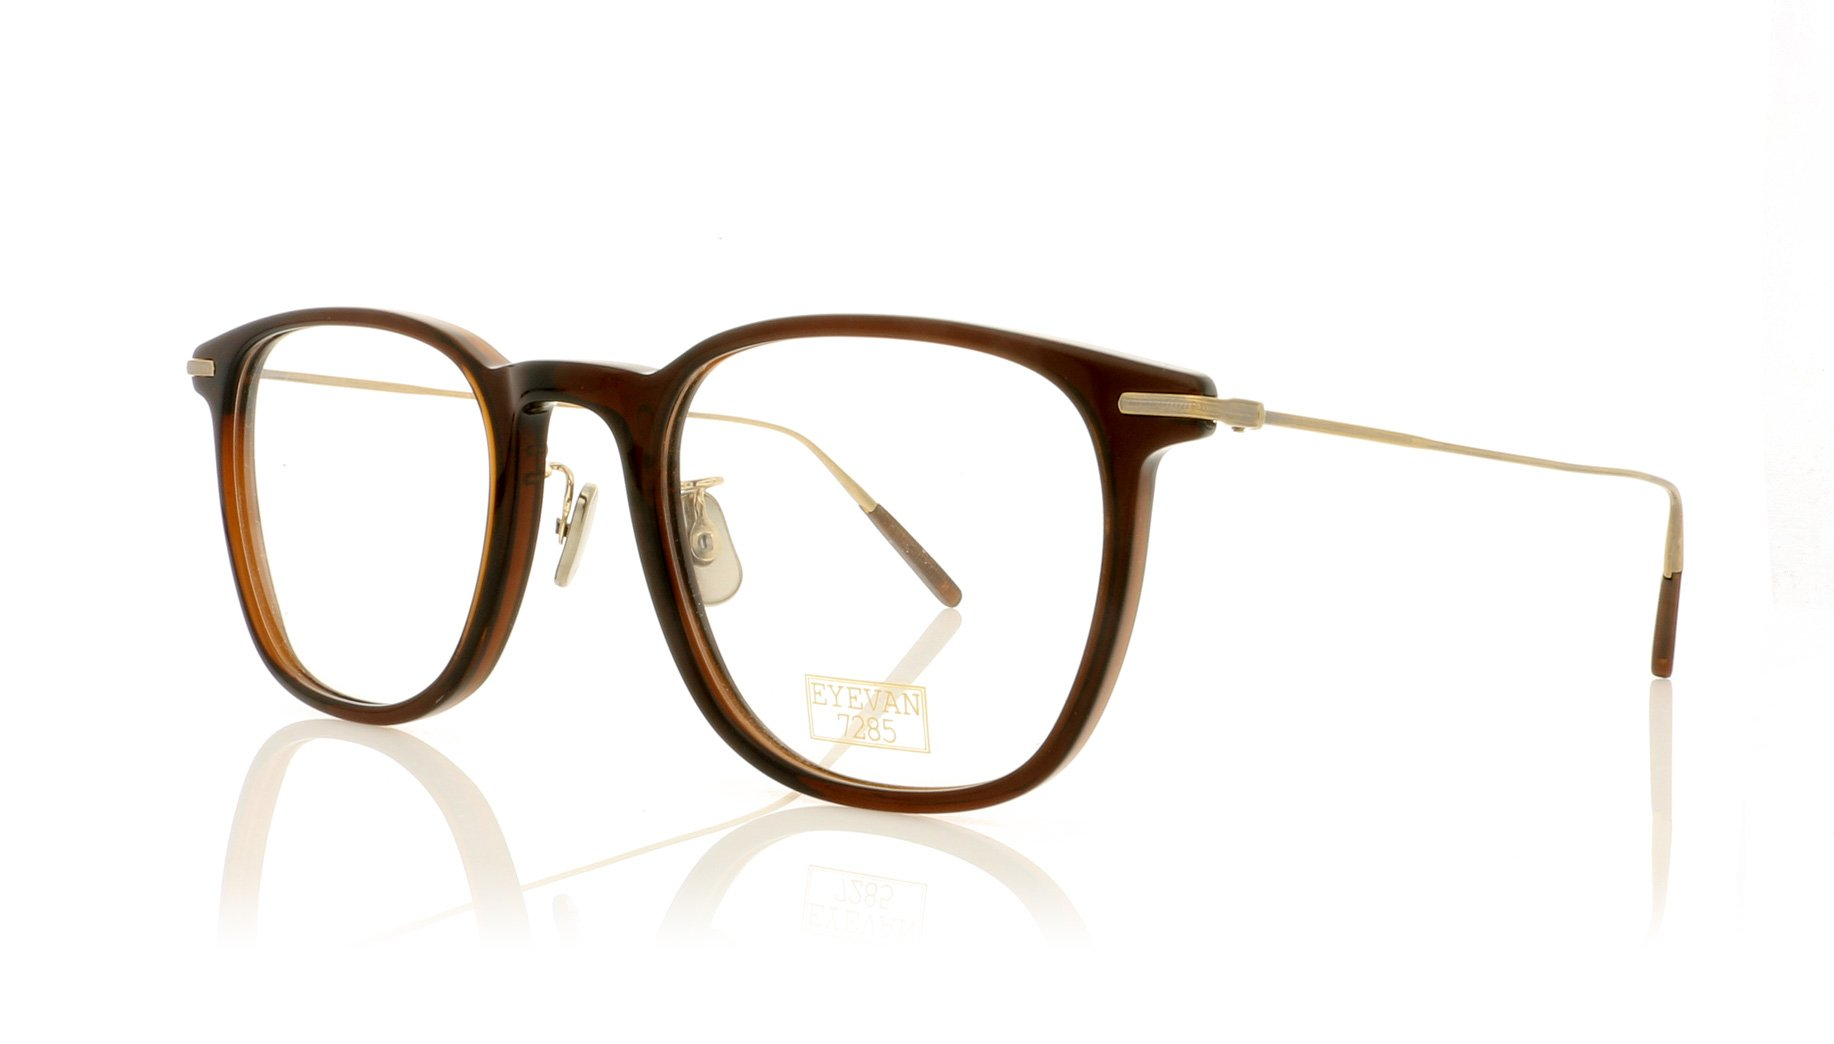 Eyevan 748 - Albert Hazan Optician